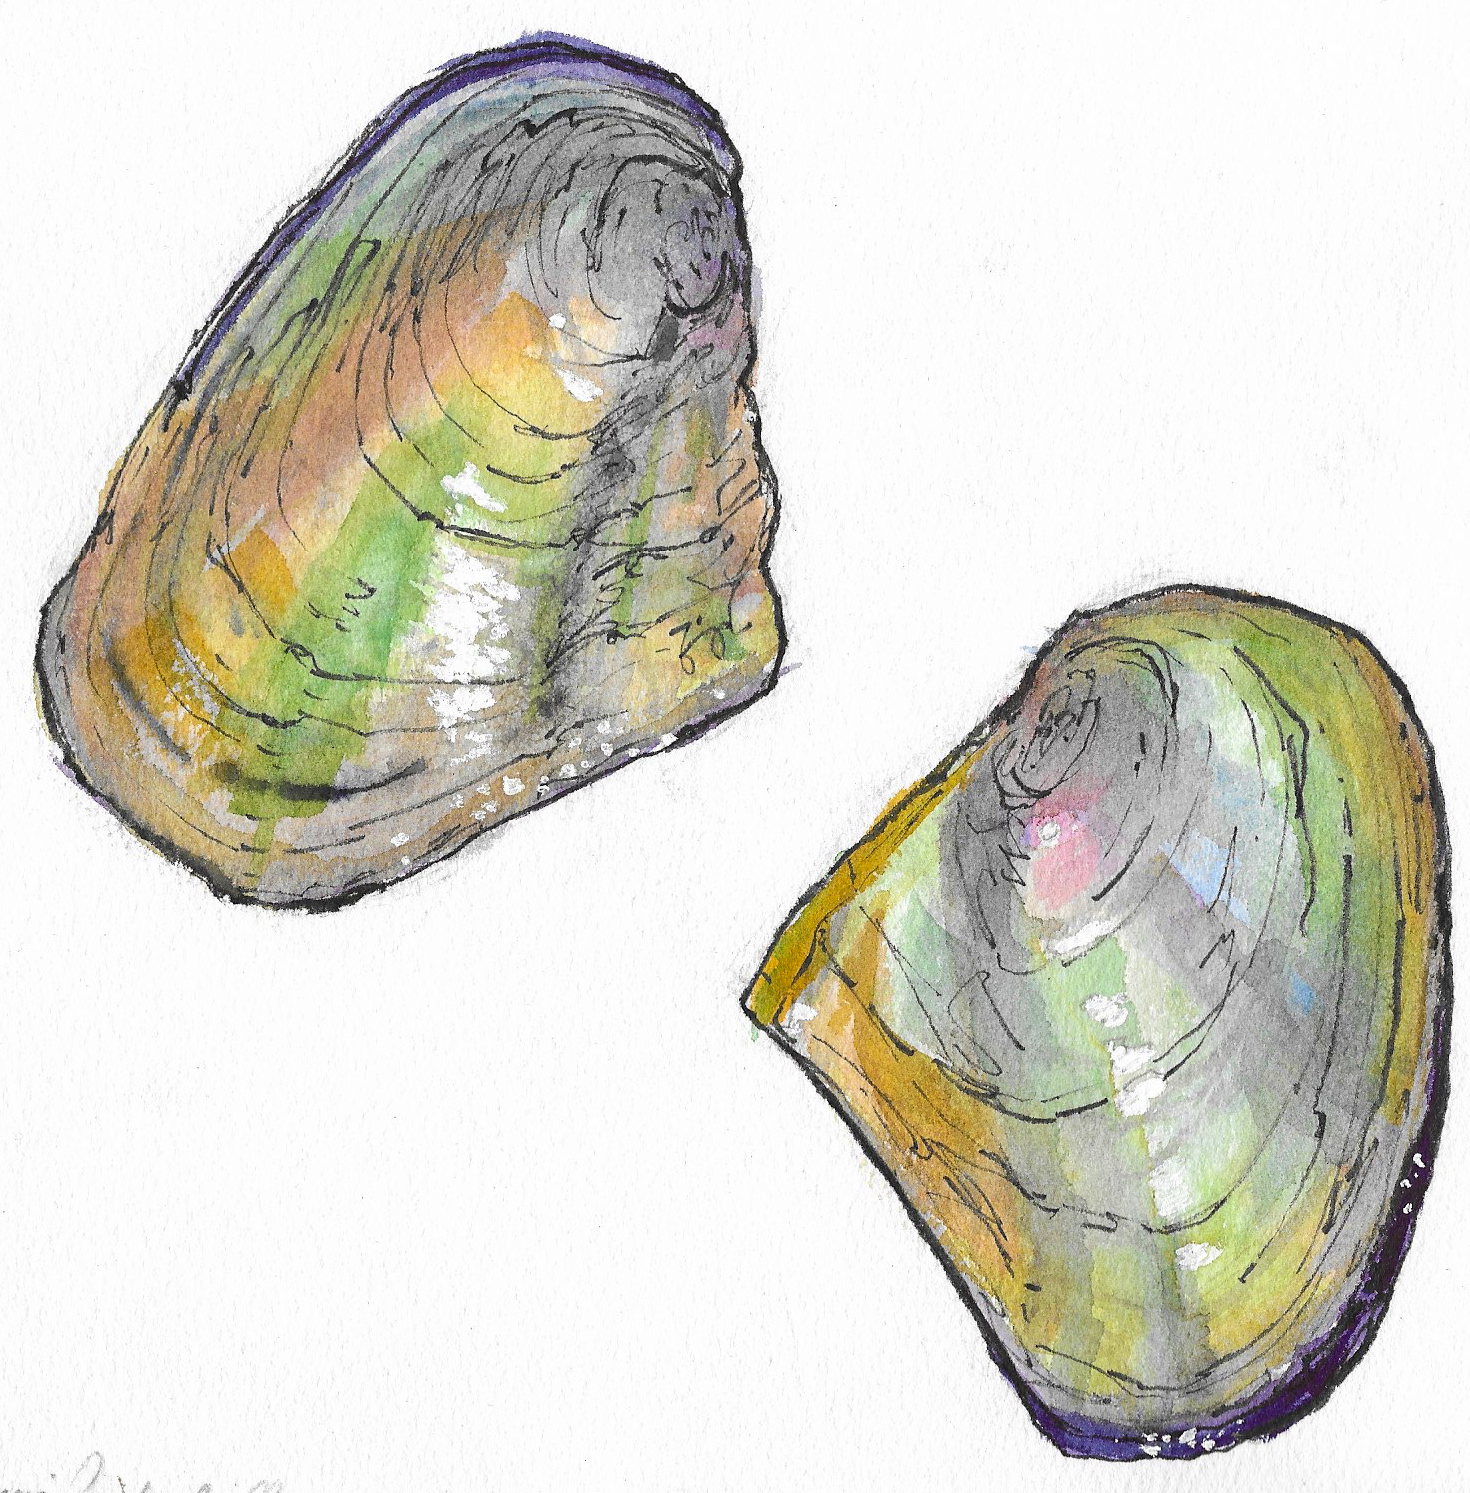 Maidens (California floater mussels)